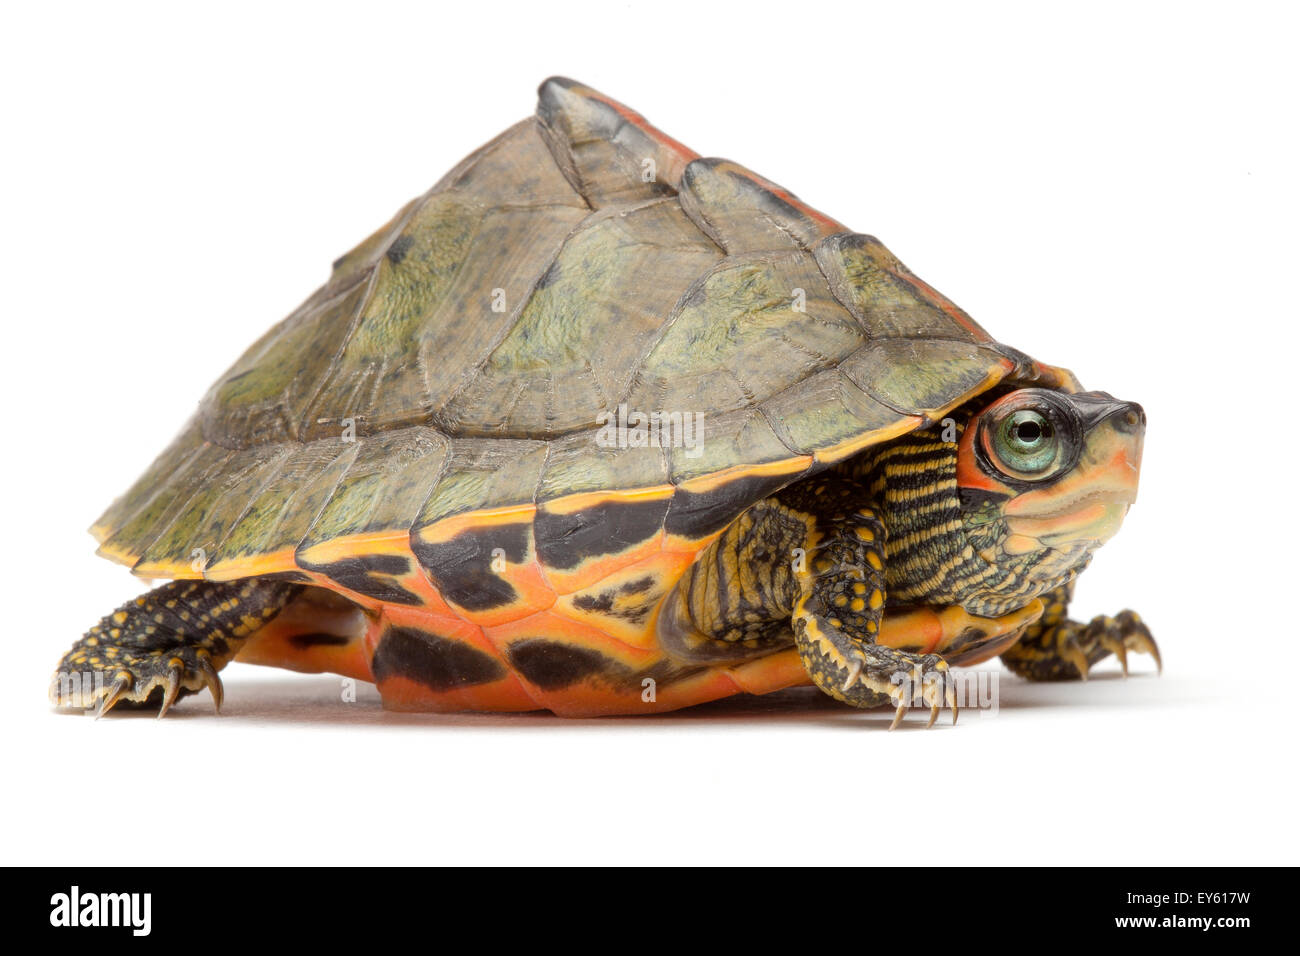 Charming Indian Roofed Turtle On White Background